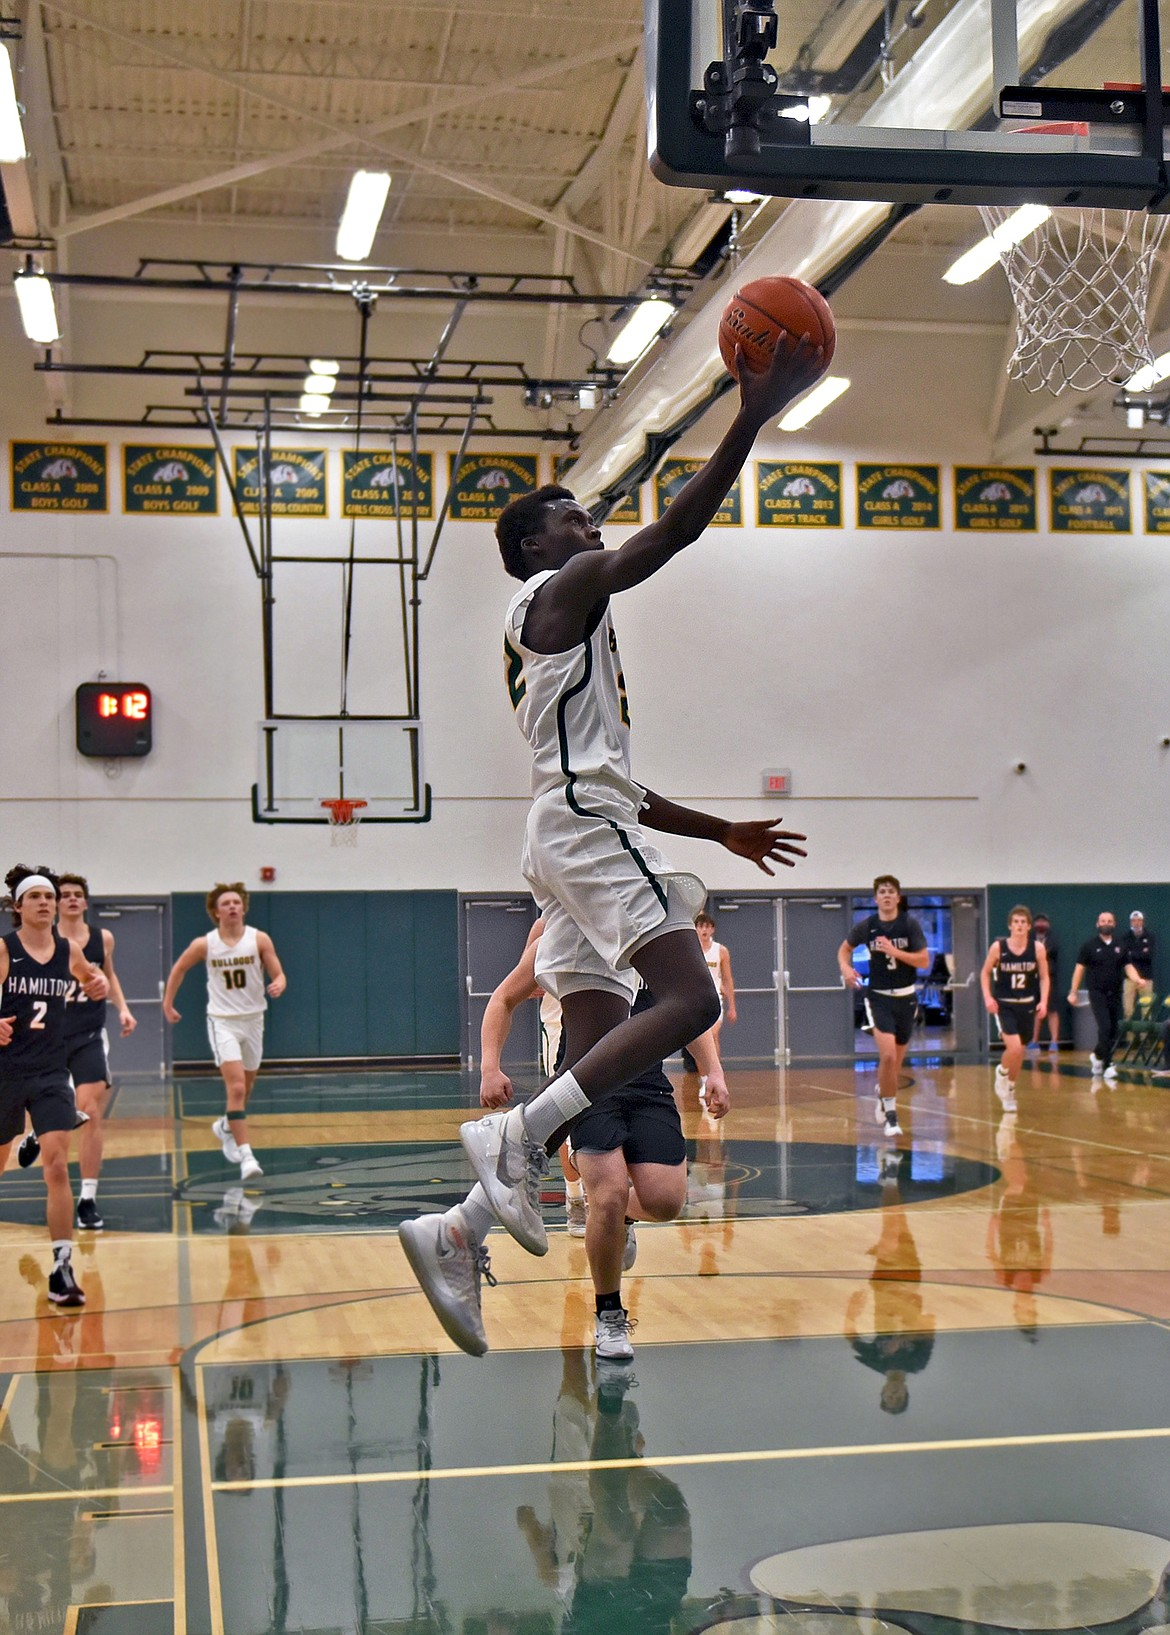 Whitefish senior Marvin Kimera gets out on the fast break for a layup against Hamilton on Saturday afternoon. (Whitney England/Whitefish Pilot)